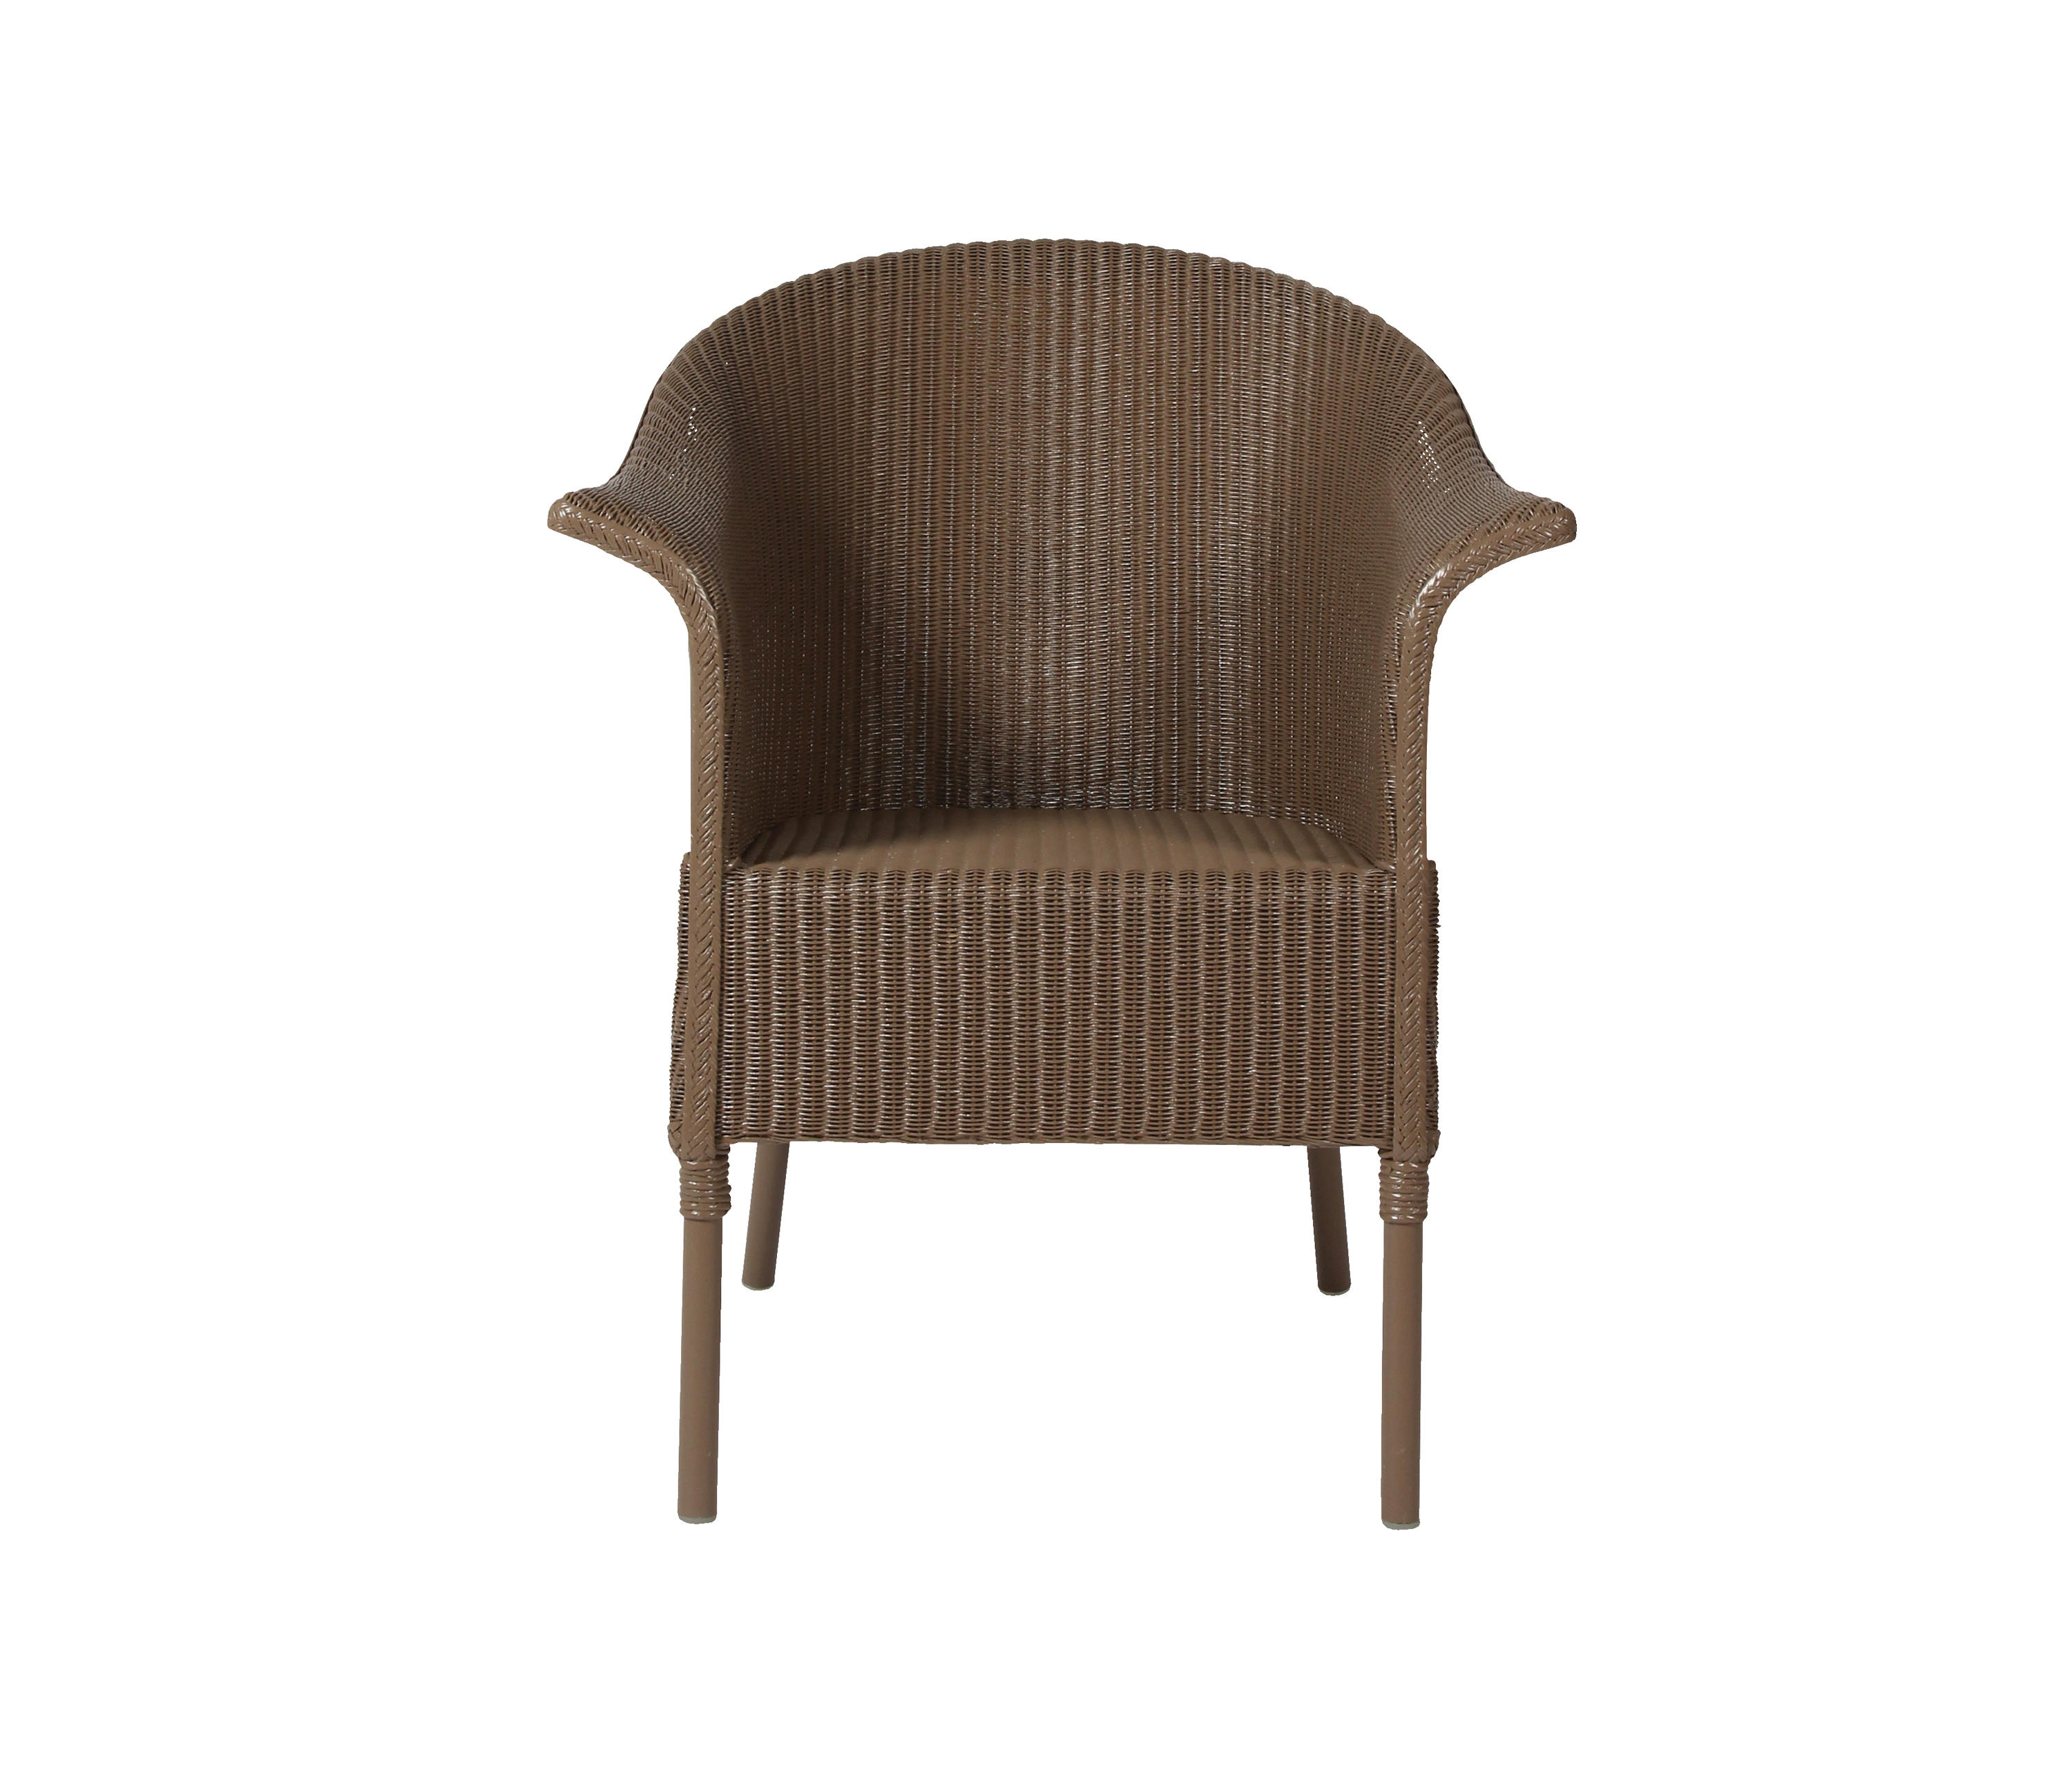 CÔTE D\'AZUR - MONTE CARLO - Chairs from Vincent Sheppard | Architonic